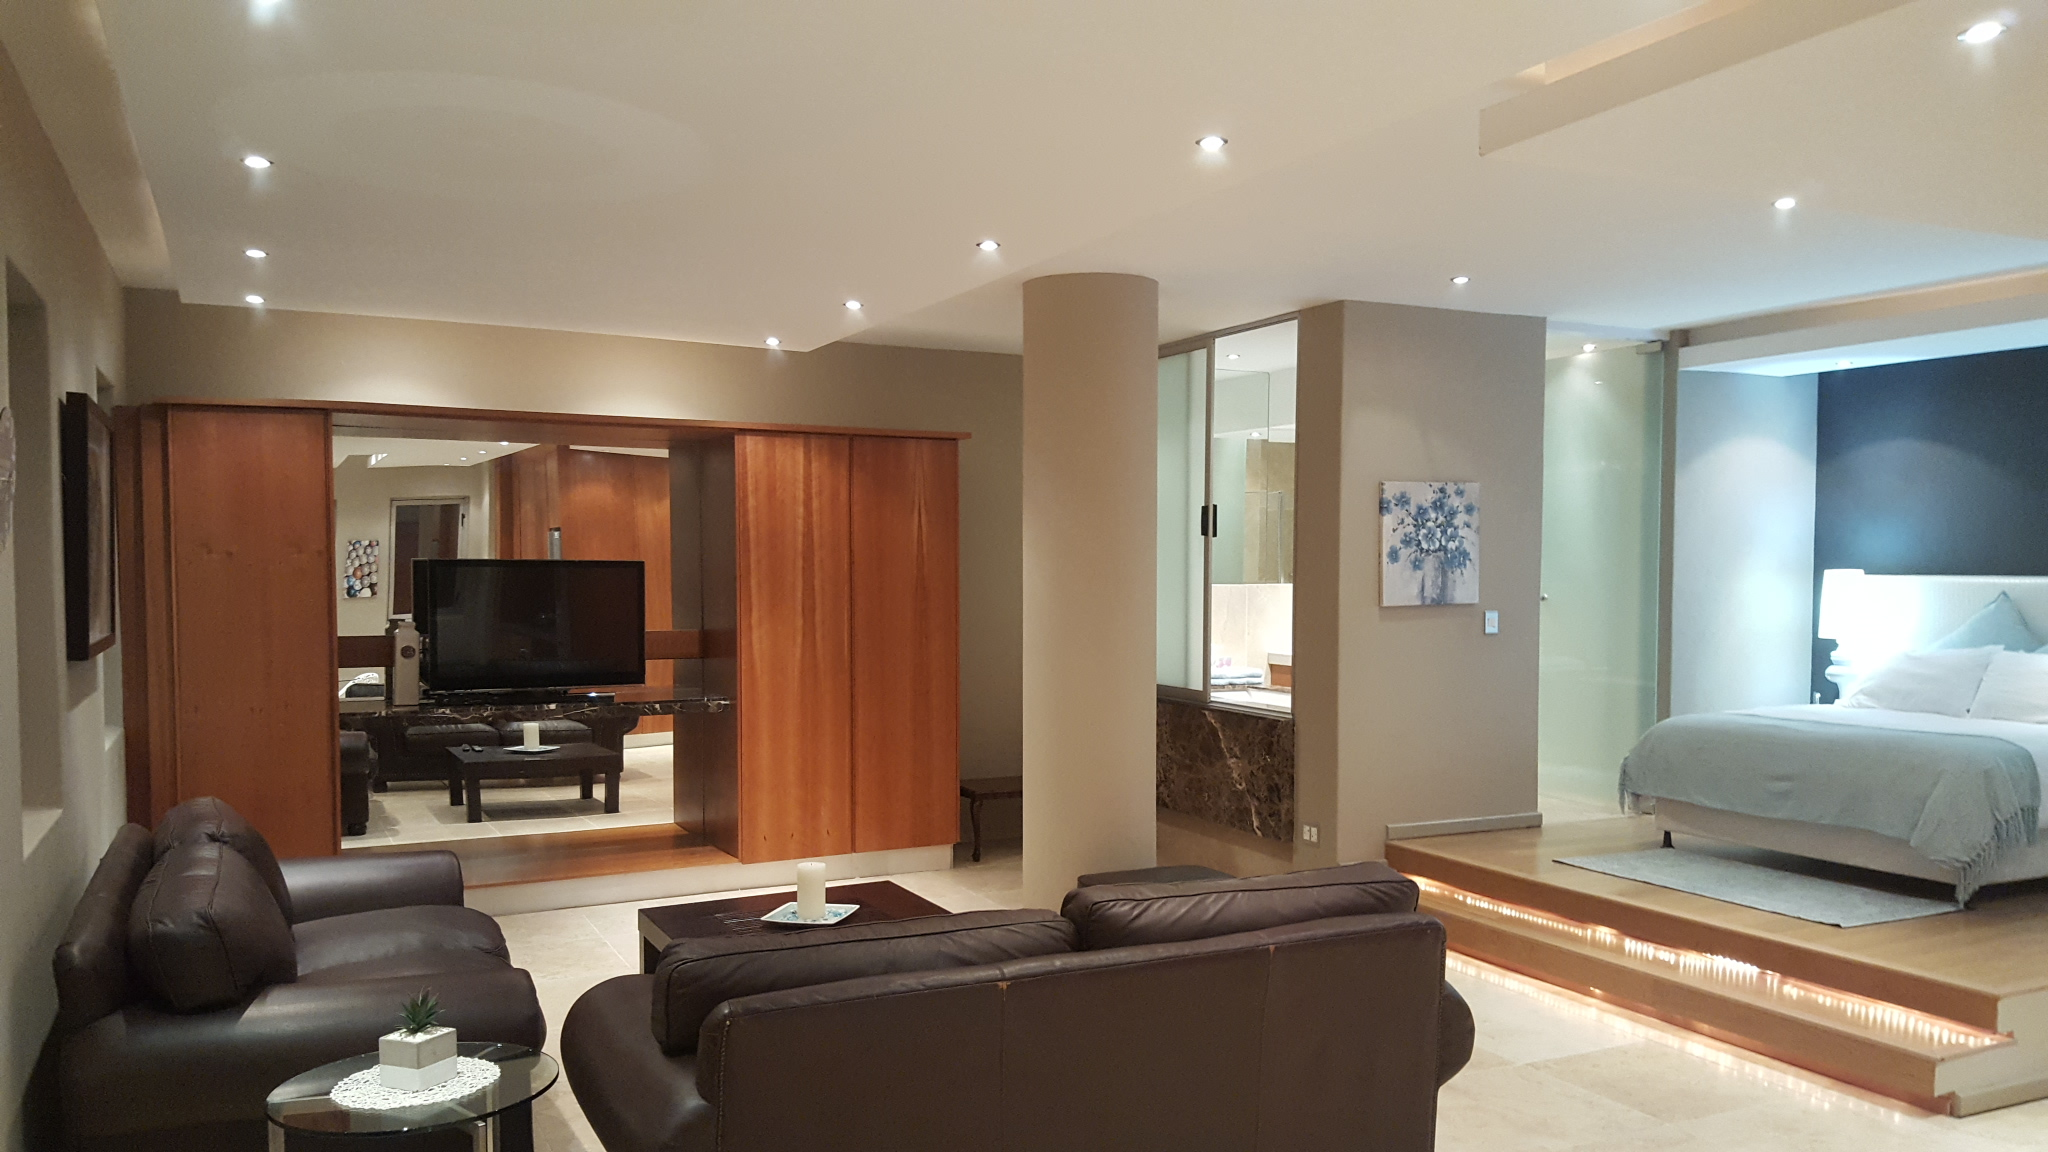 1 BedroomApartment For Sale In Newtown